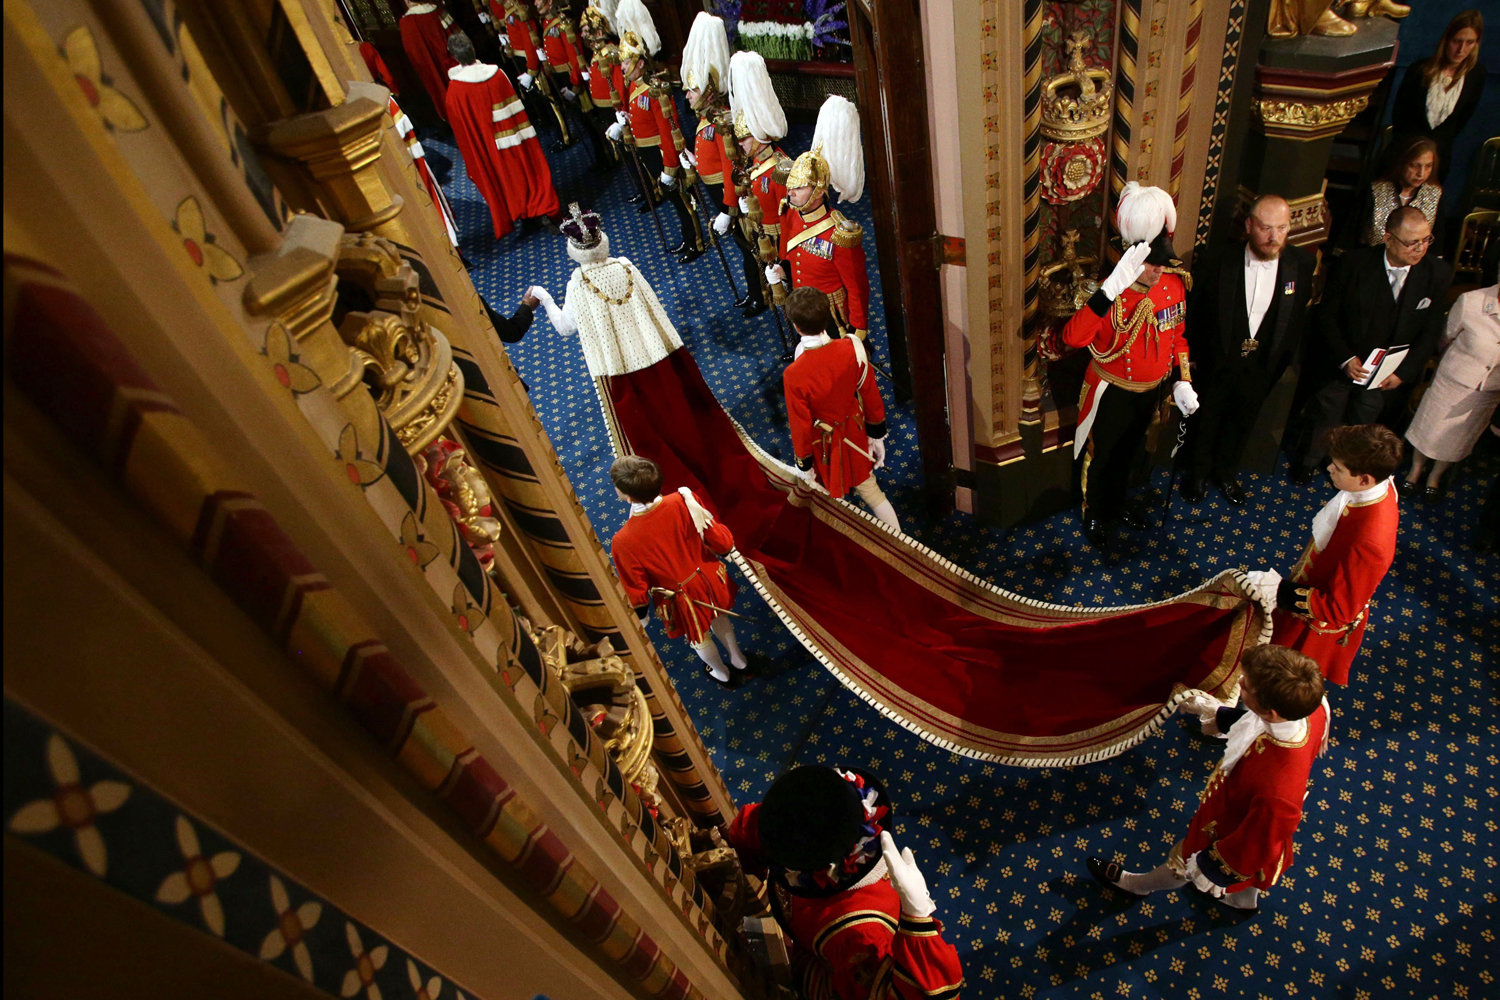 June 4, 2014.  Britain's Queen Elizabeth II and Prince Philip, Duke of Edinburgh proceed through the Royal Gallery during the State Opening of Parliament in the House of Lords at the Palace of Westminster in London.